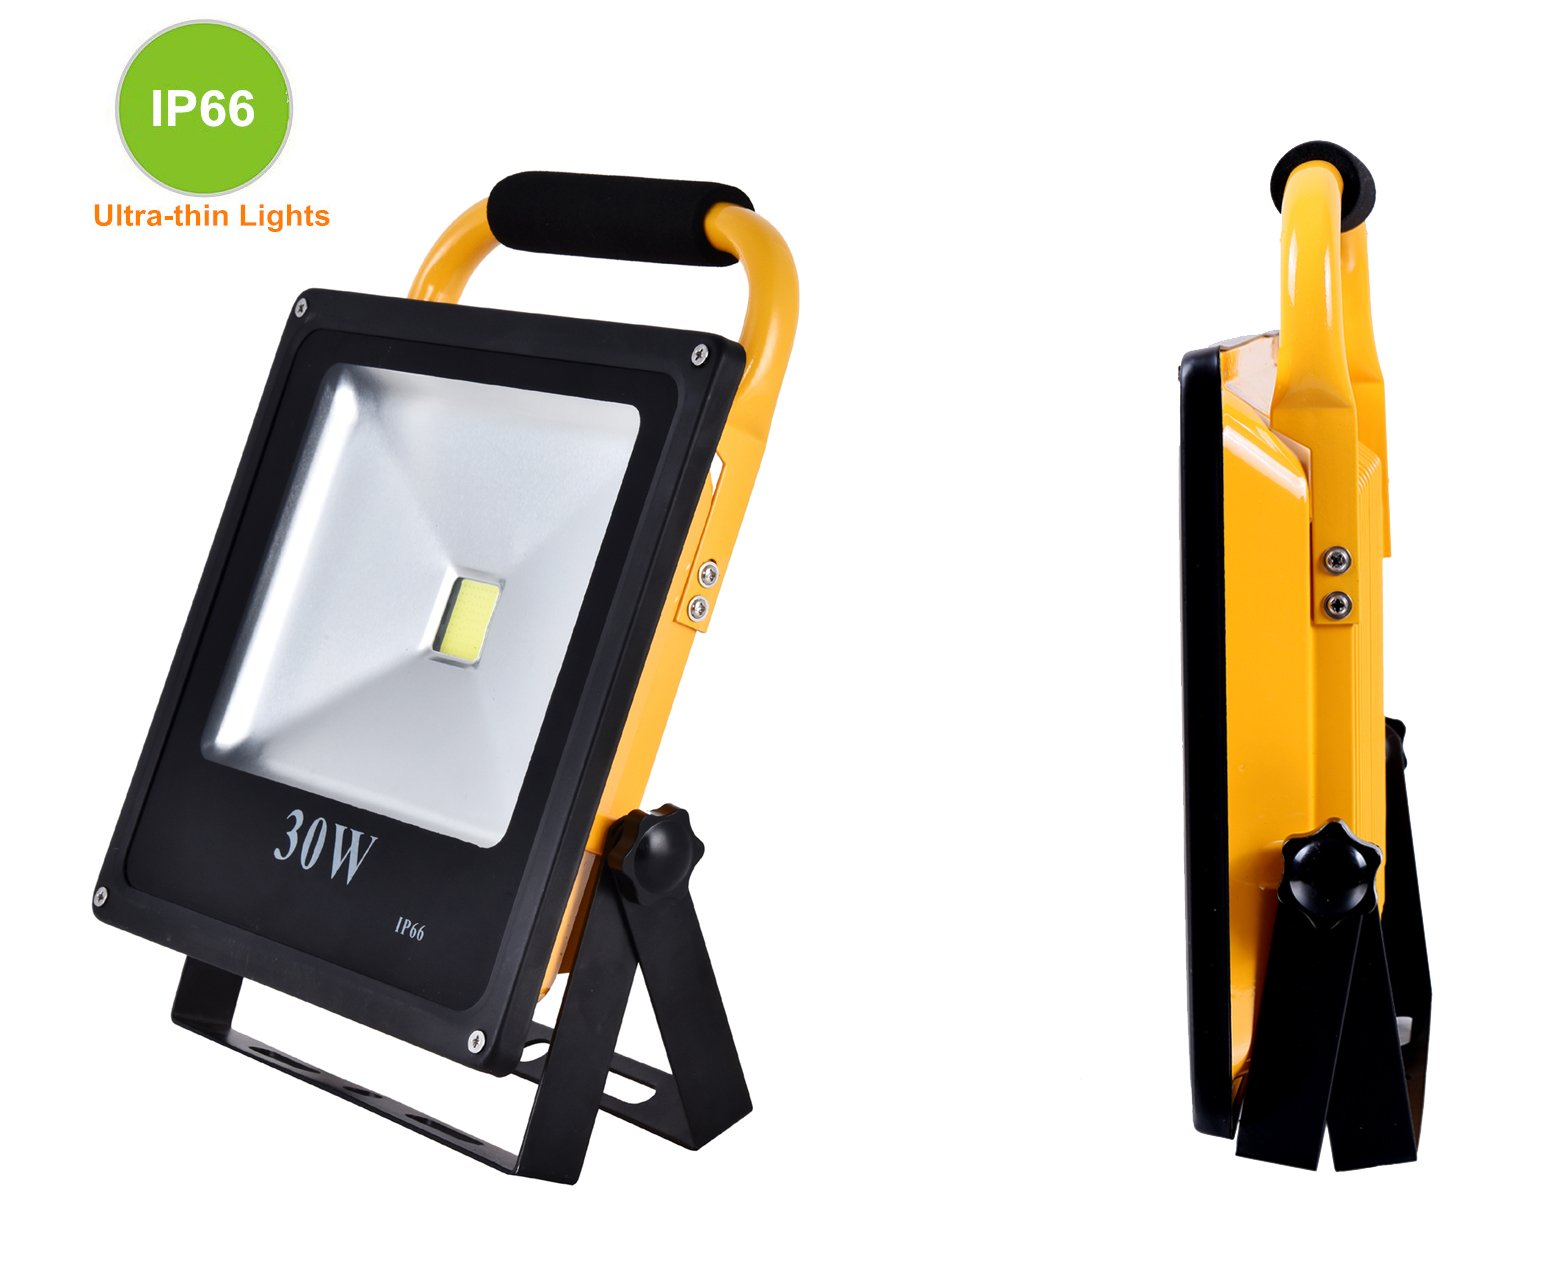 Starsea Portable Work Lights 30W, Rechargeable Led Flood Light with 18650 Lithium Batteries IP66 Waterproof, Rechargeable Led Spotlight, Work Light, Adapter Included